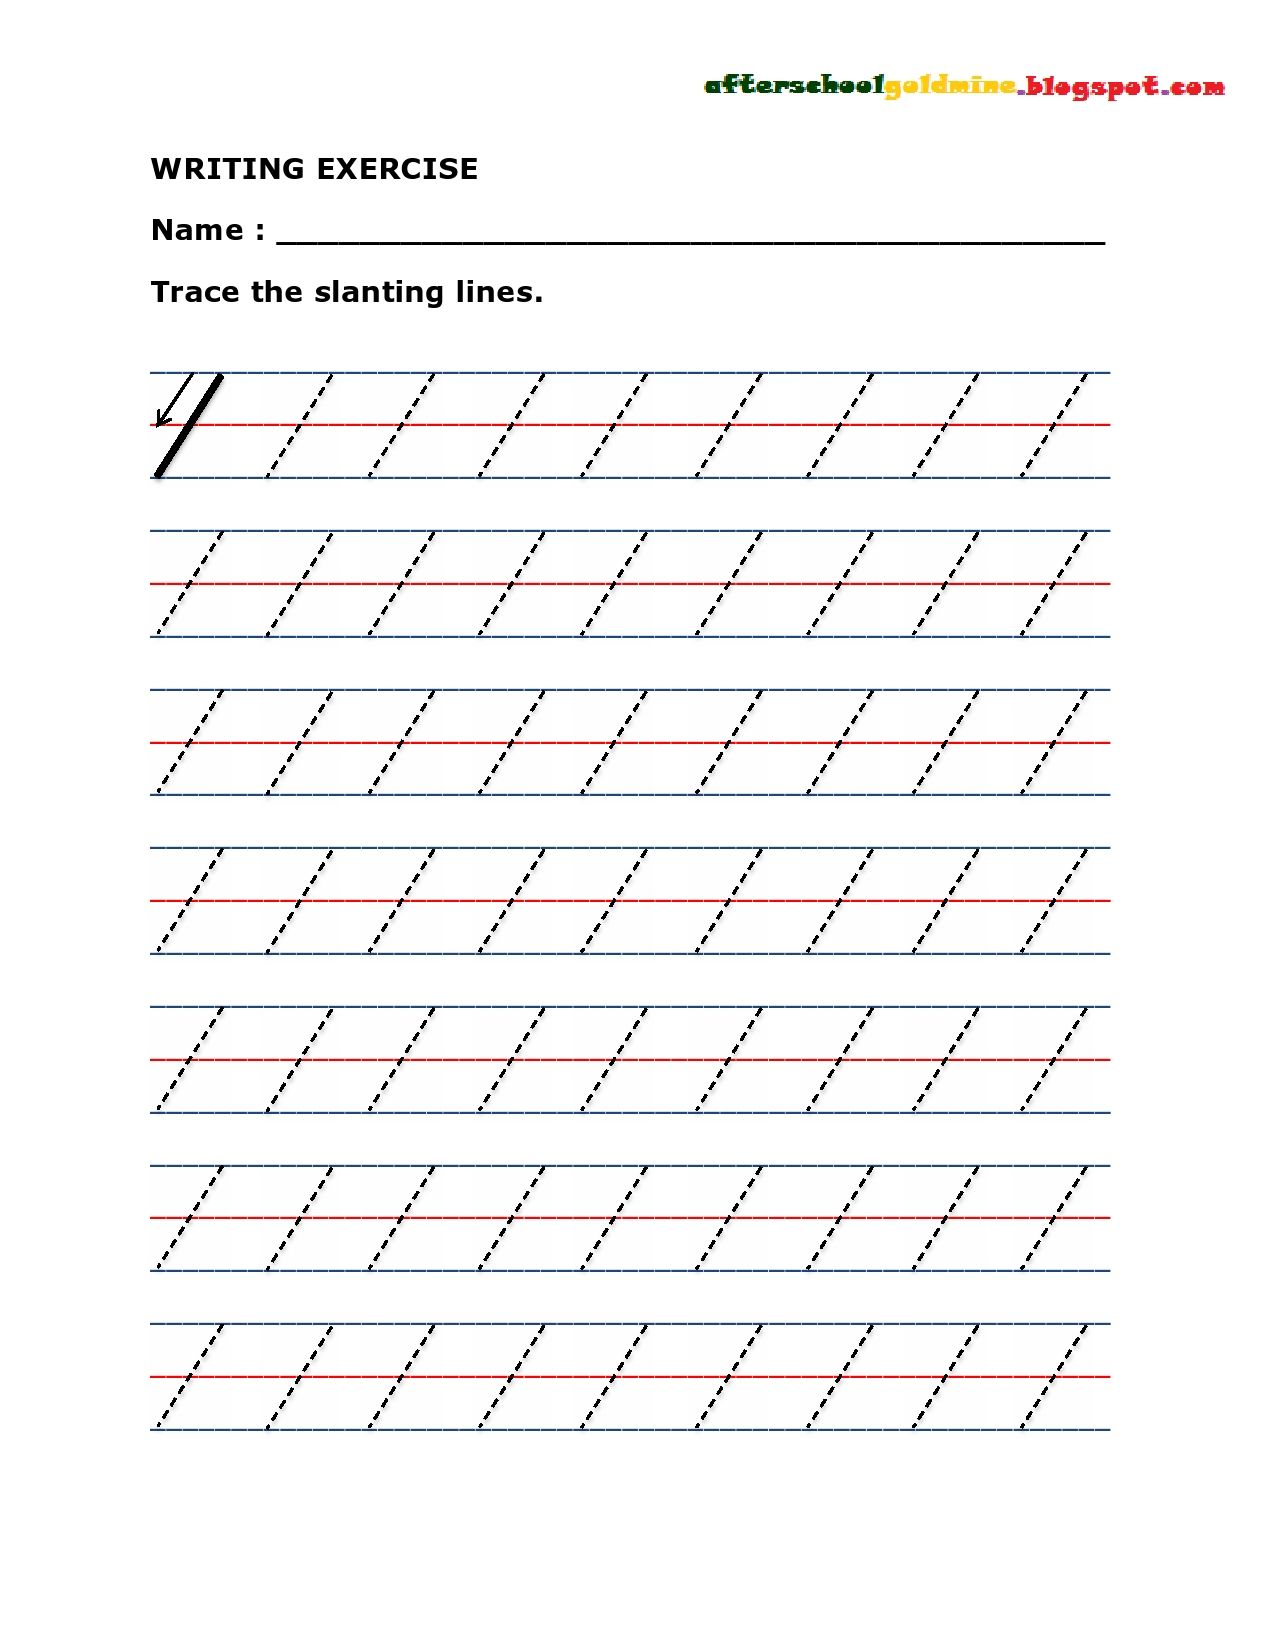 Practice Writing Slanting Or Diagonal Lines | Tracing